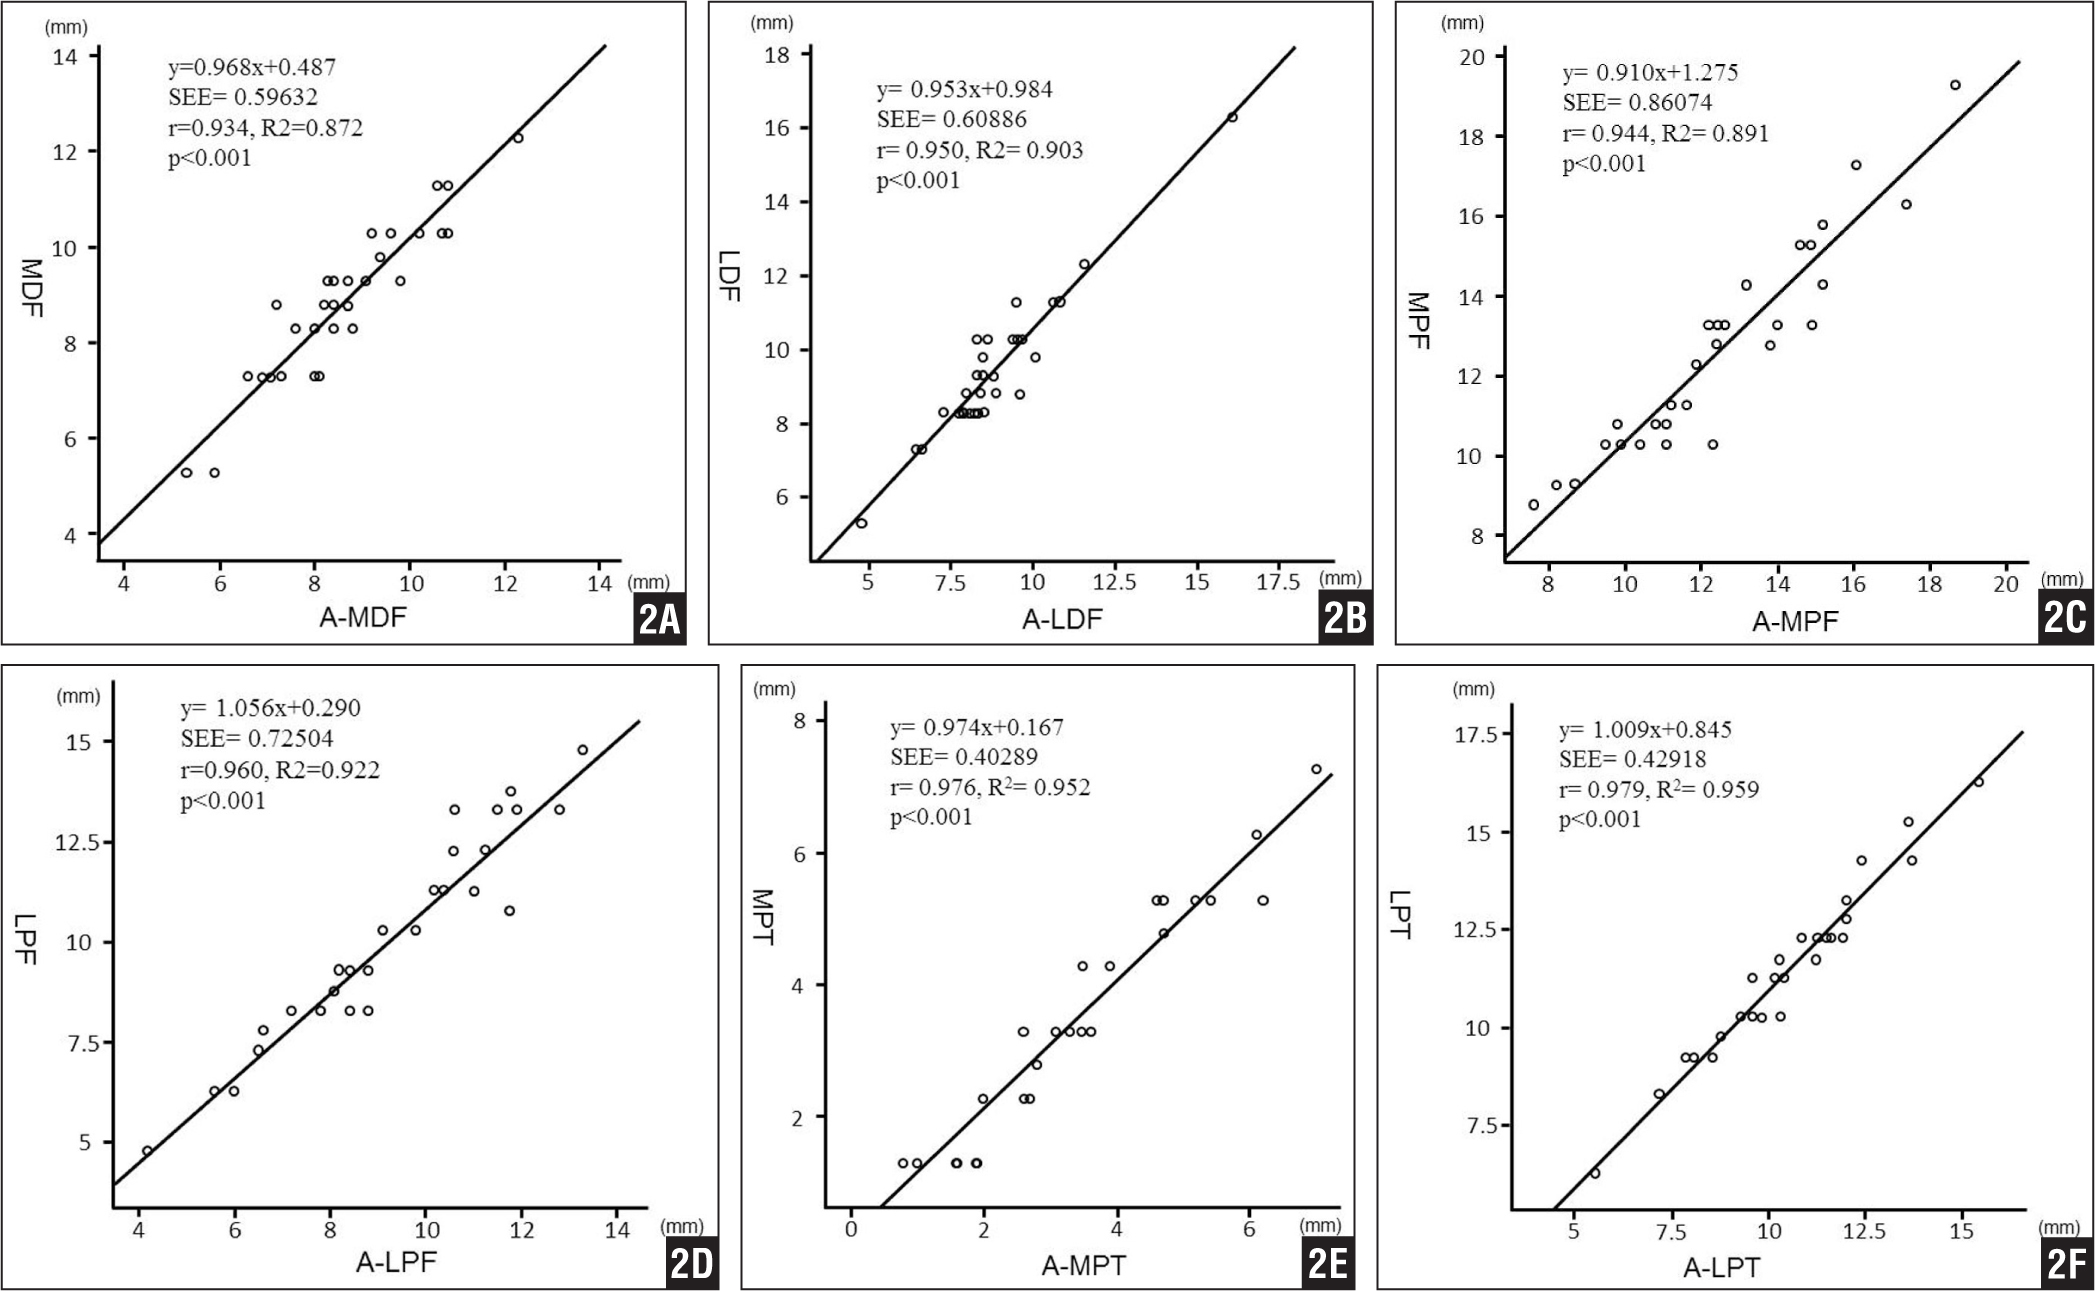 Linear regression analysis revealing statistically excellent correlation between the intraoperative values and measured postoperative values of the medial (MDF) (A) and lateral (LDF) (B) condyles of the distal femur, medial (MPF) (C) and lateral (LPF) (D) condyles of the posterior femur, and medial (MPT) (E) and lateral (LPT) (F) proximal tibias (P<.001). Abbreviations: A, Athena Knee (SoftCube Co, Ltd, Osaka, Japan) postoperative value; SEE, standard error of the estimate.